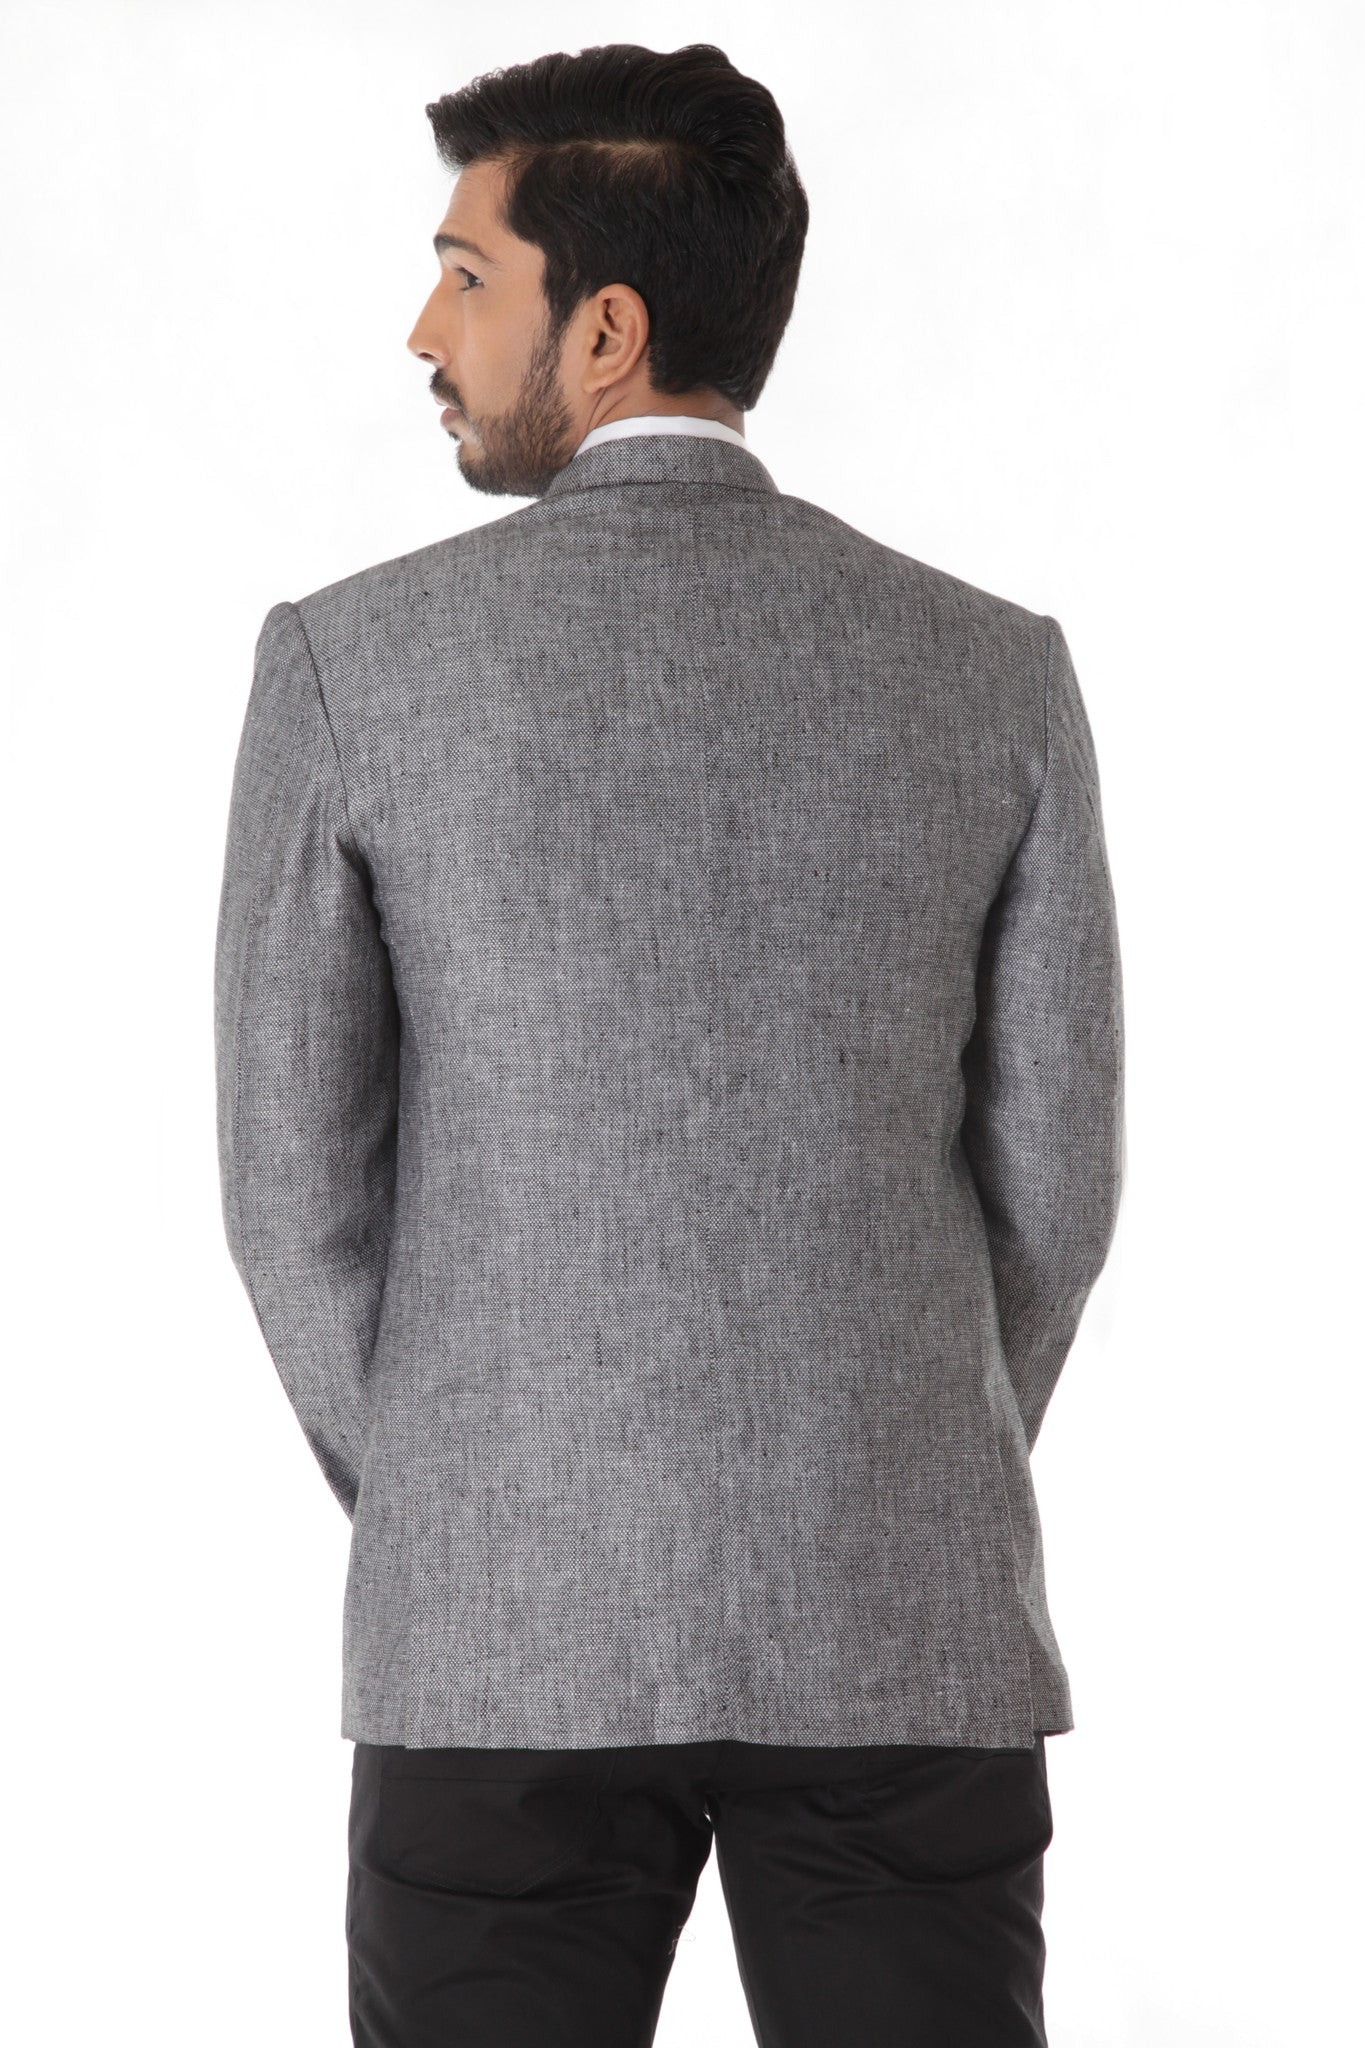 Grey Linen Bandhgala Jacket with Pocket Square